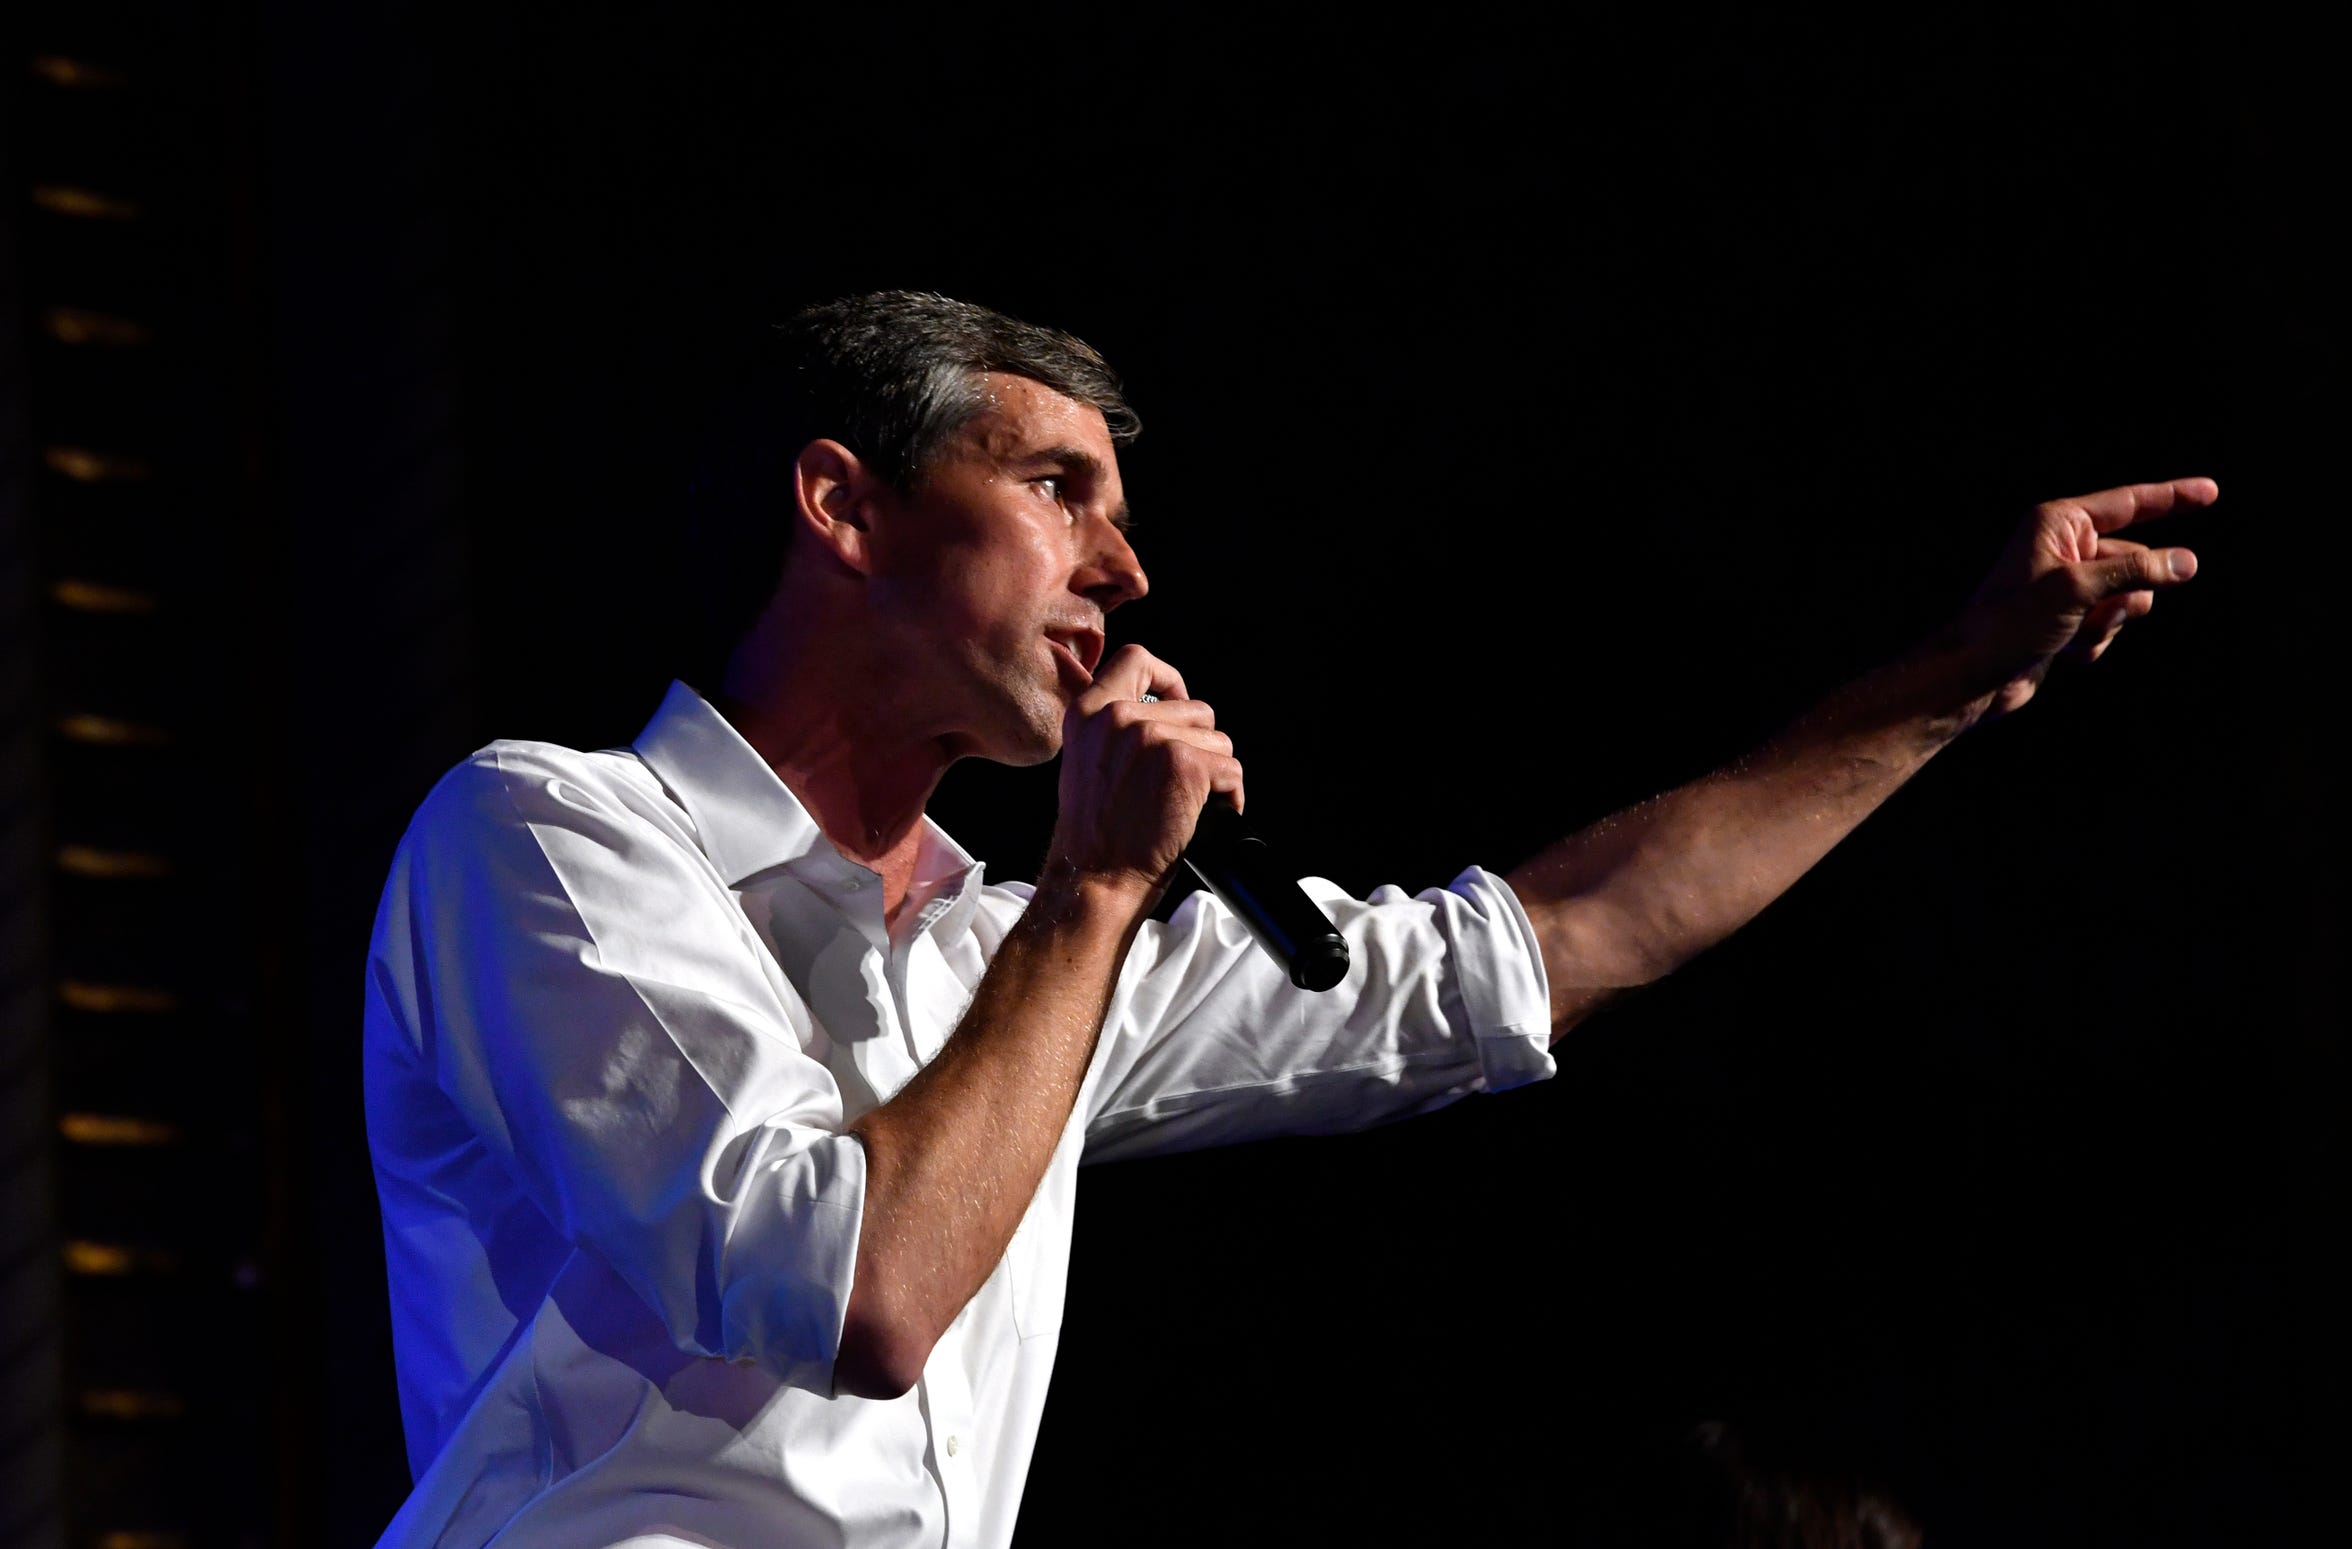 U.S. Senate candidate Beto O'Rourke speaks during a town hall meeting at the Paramount Theatre in August. Five Democratic candidates spoke to a crowd of nearly 800 people. O'Rourke earned less than 30 percent of the Taylor County in the November election.